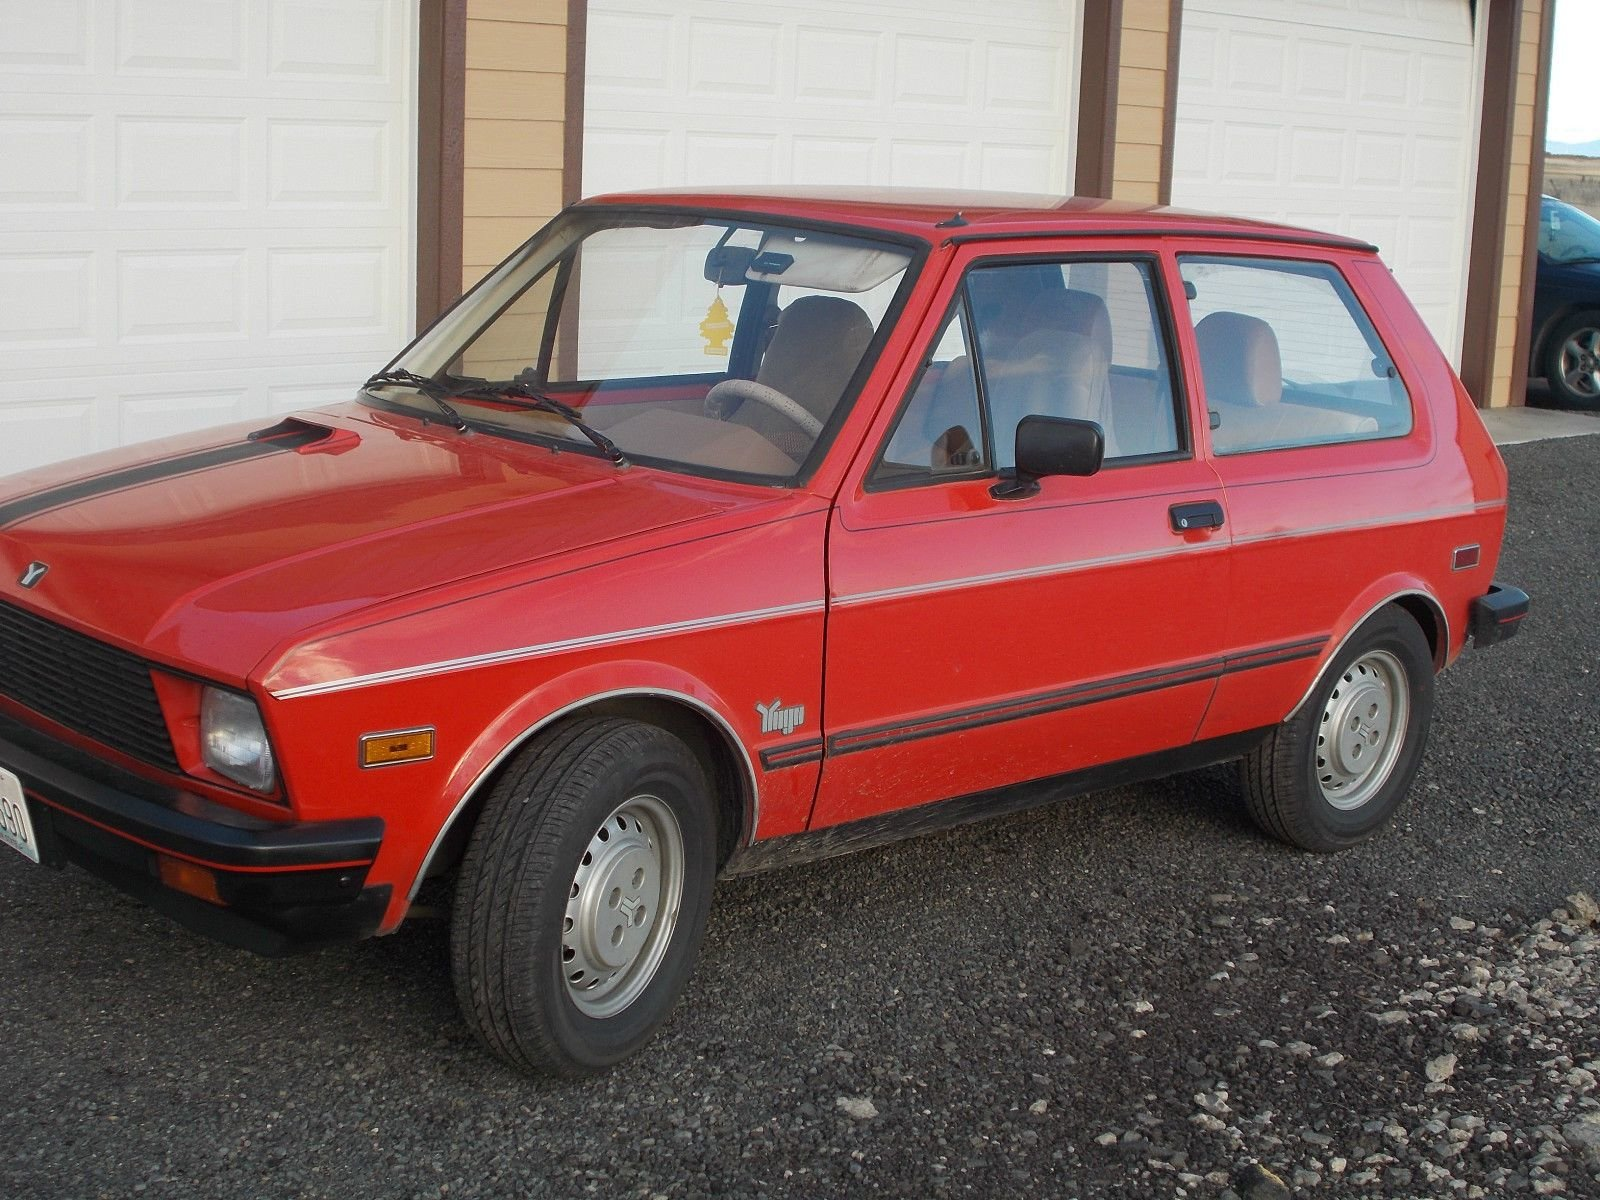 New 1986 Yugo 45 Gv Classic Other Makes Yugo 45 Gv 1986 For Sale On This Month